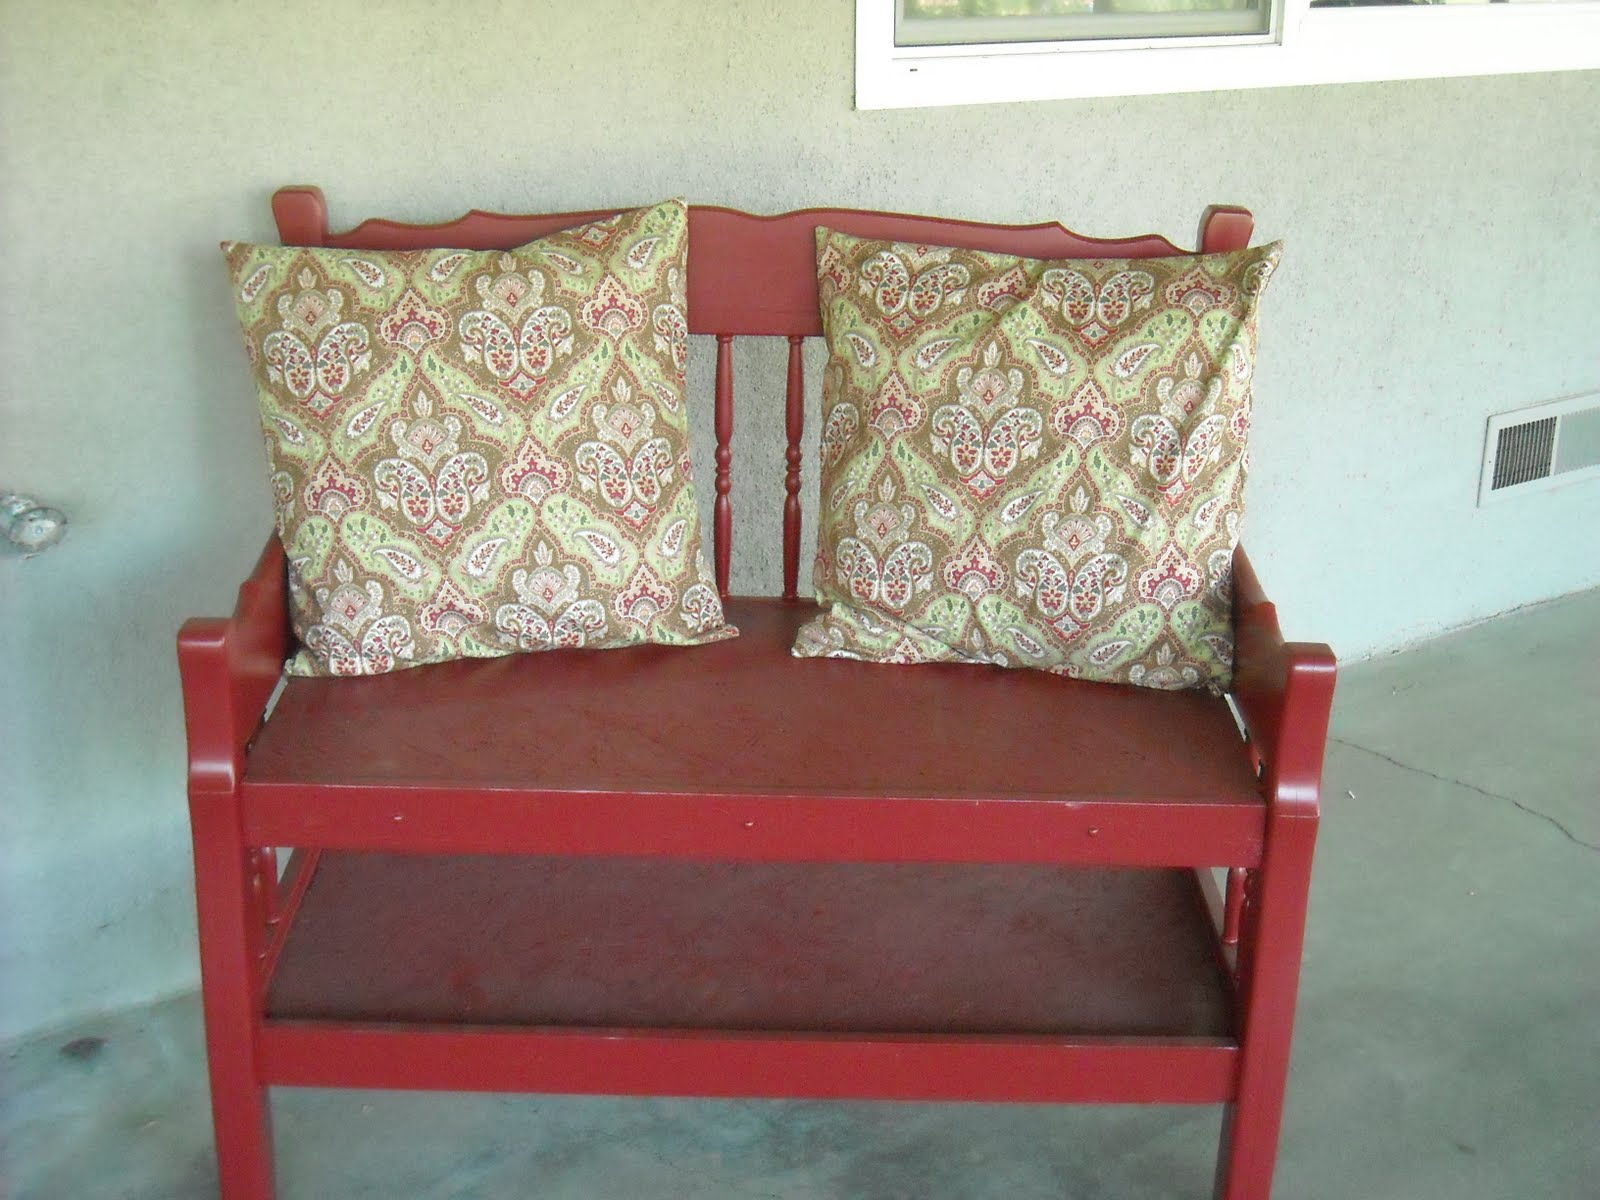 Love Our Simple Life Twin Bed Becomes An Outdoor Bench